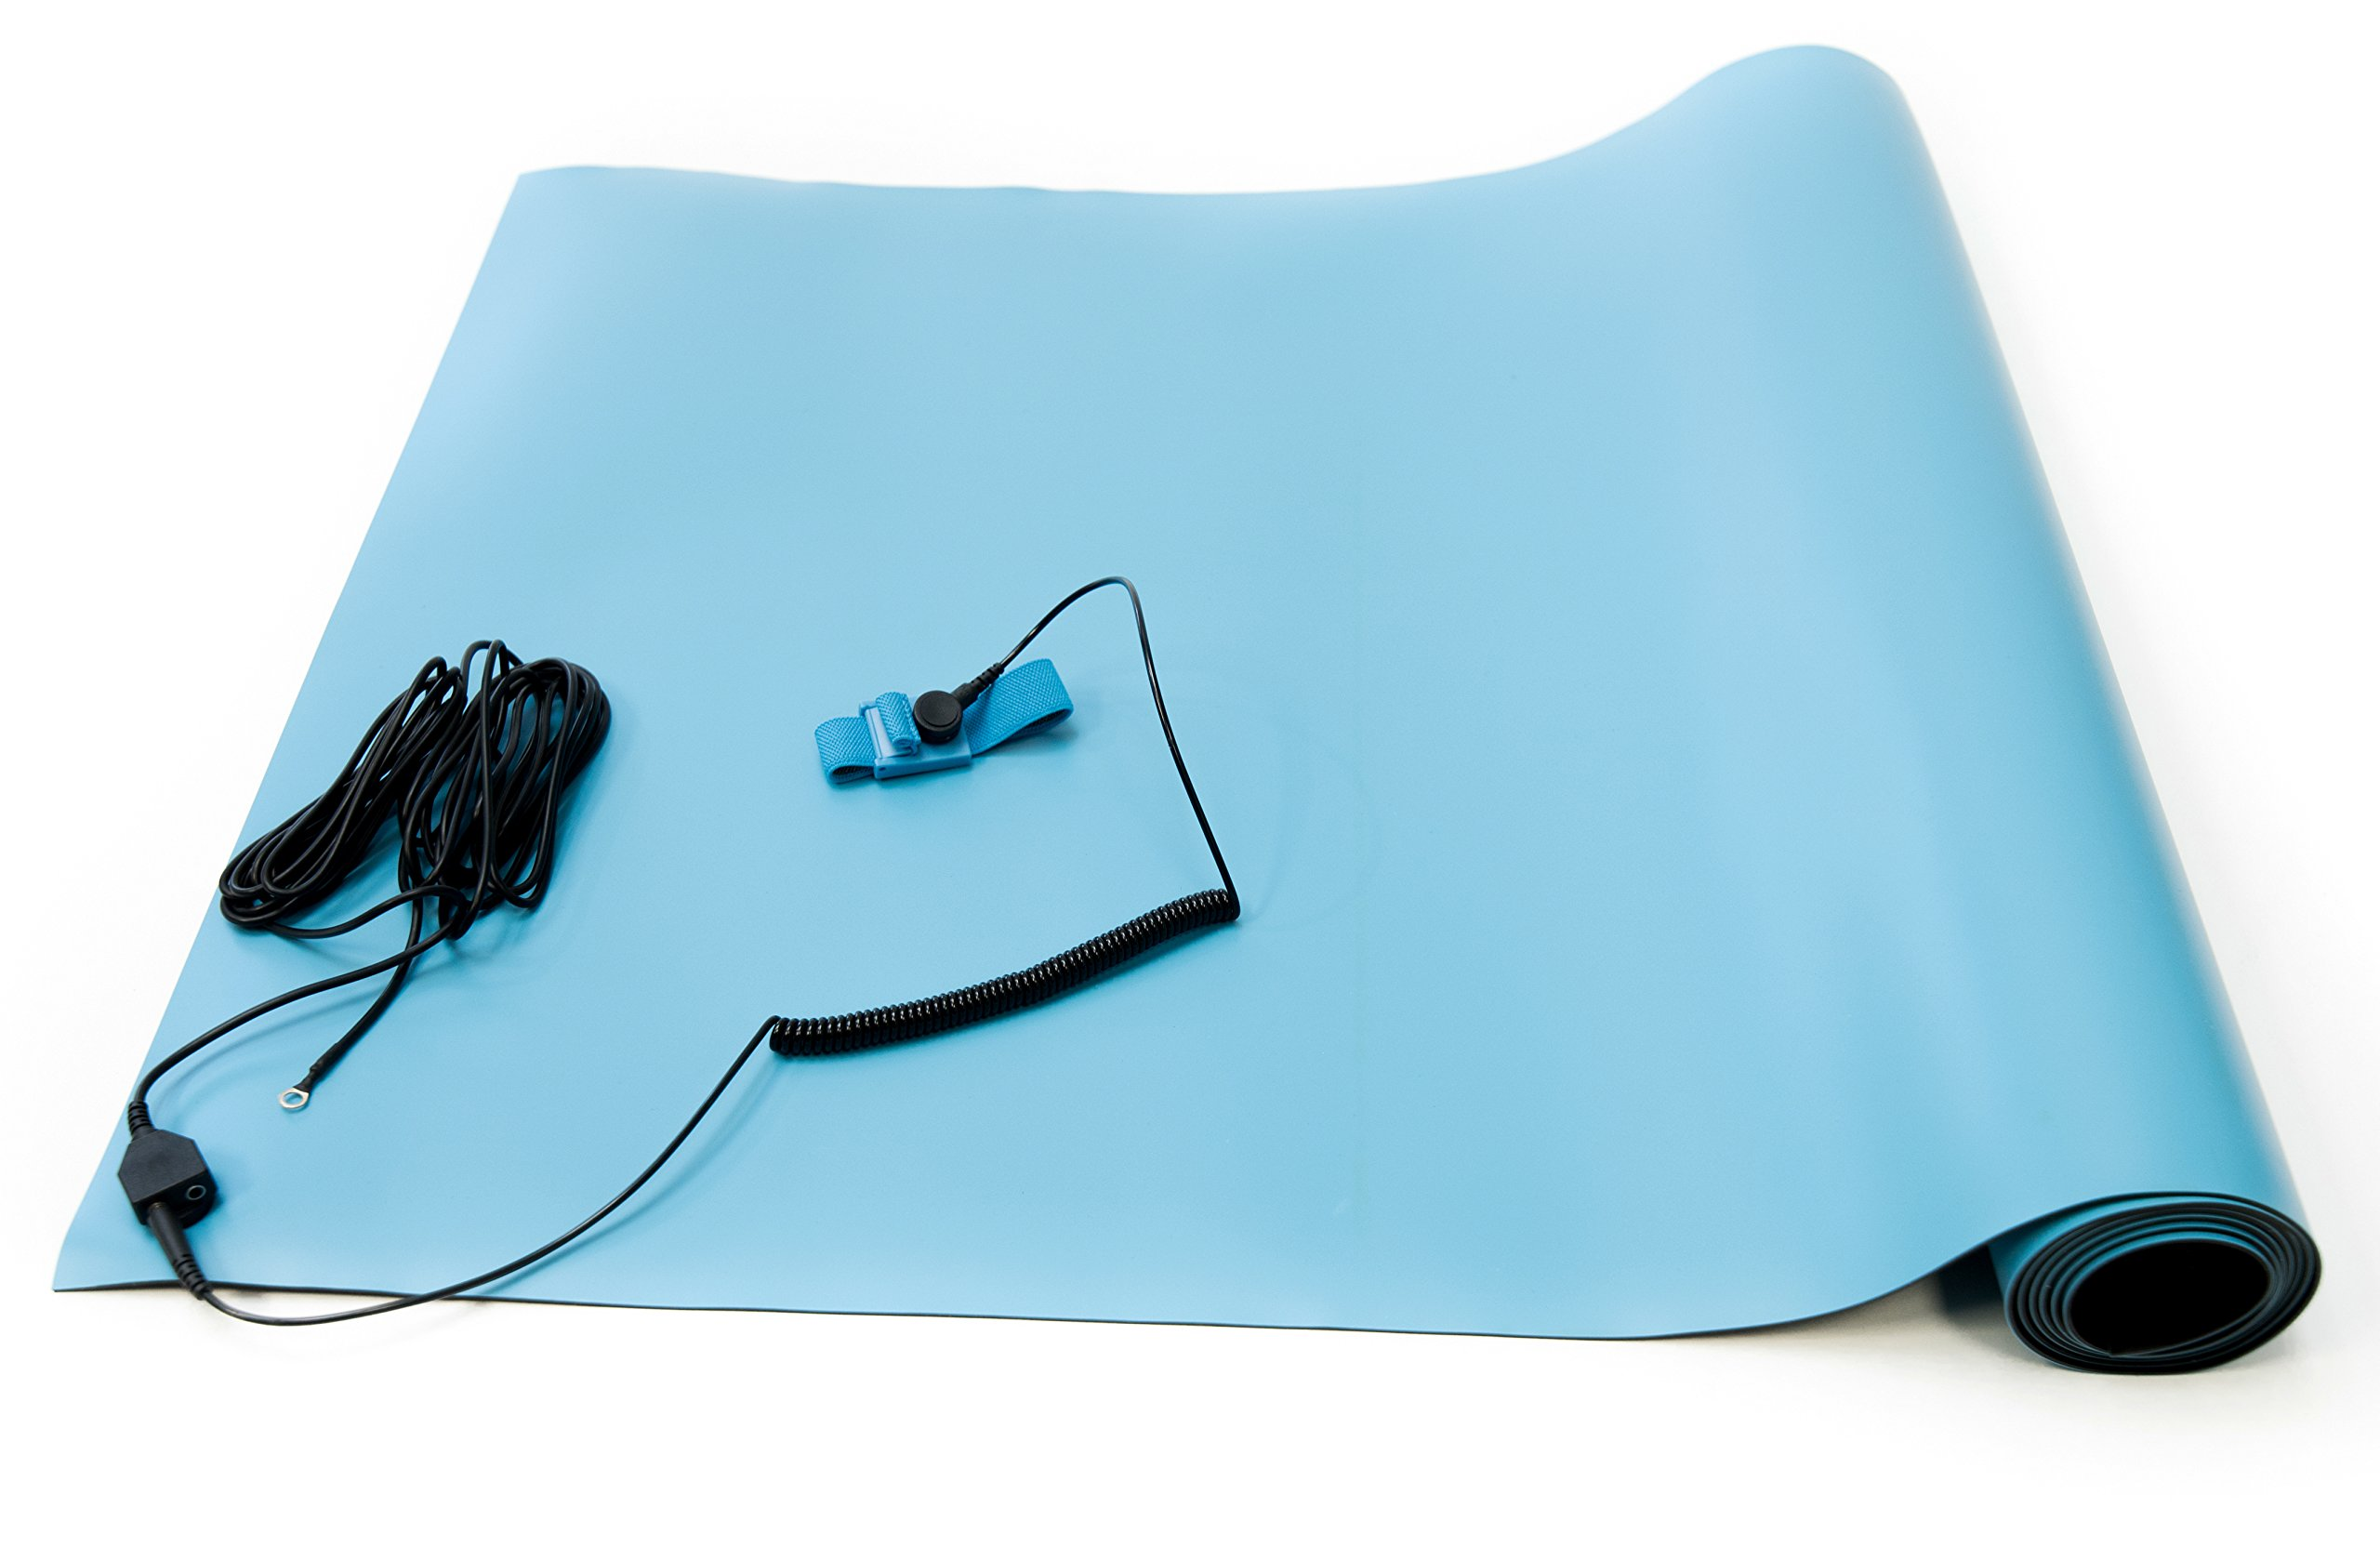 Bertech ESD High Temperature Rubber Mat Kit with a Wrist Strap and Grounding Cord, 2' Wide x 3' Long x 0.08'' Thick, Blue by Bertech (Image #3)